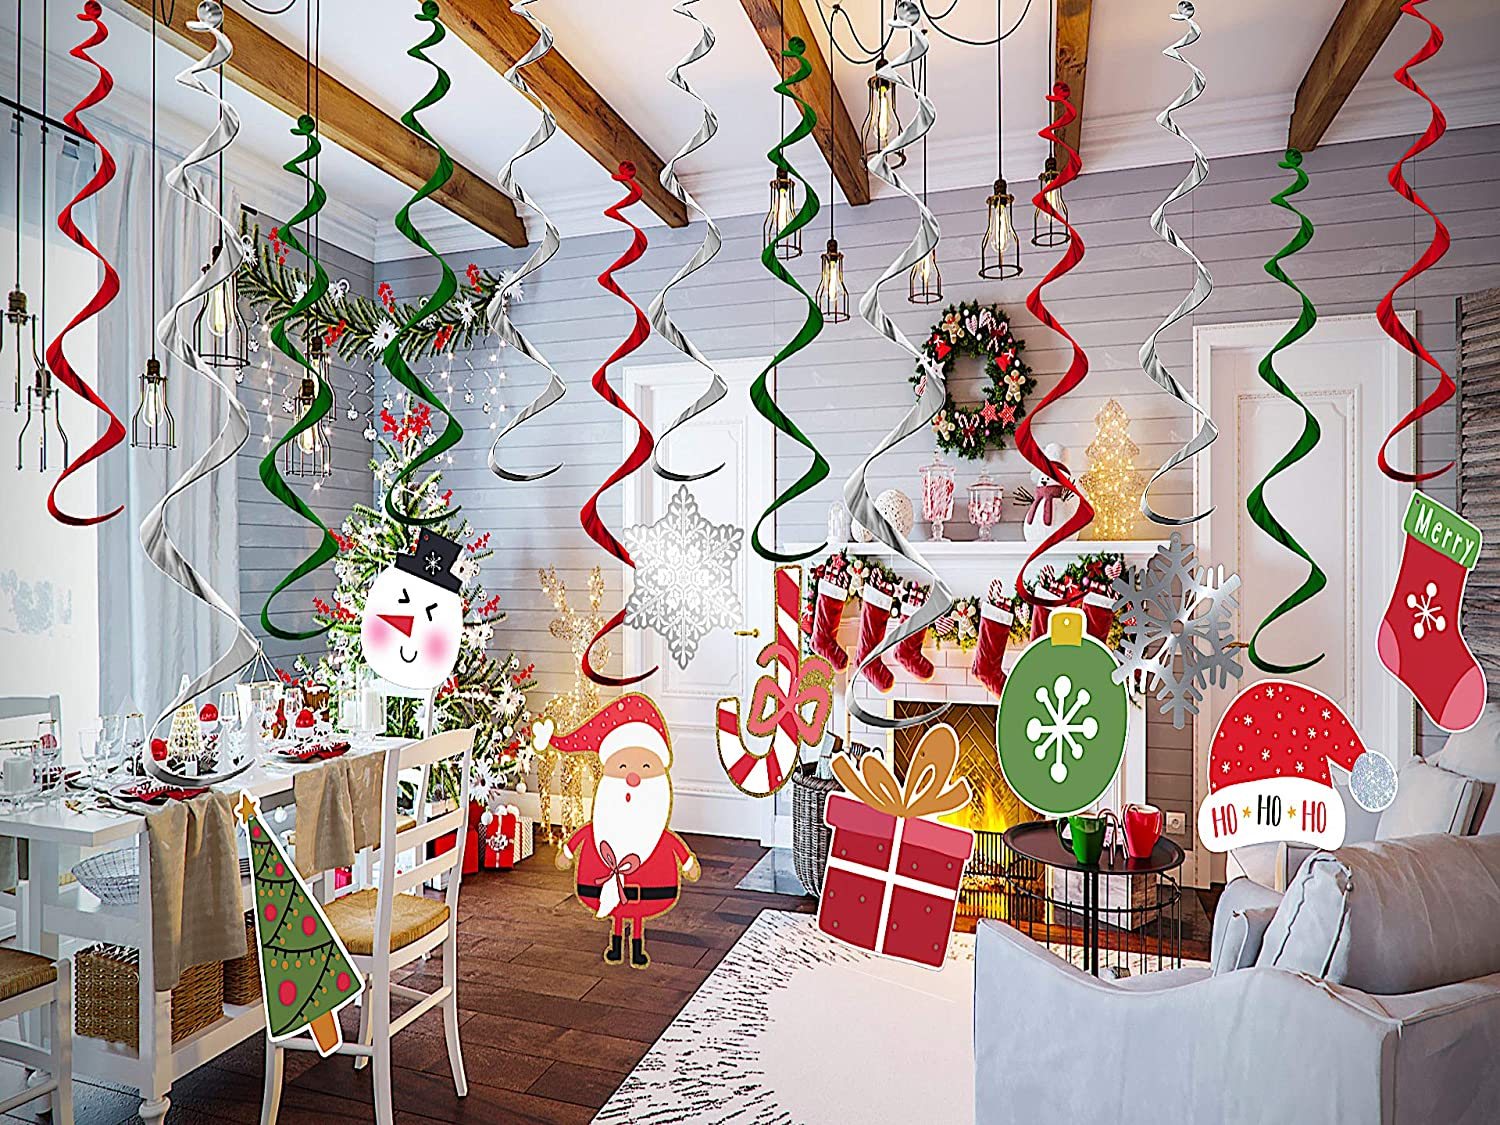 Amerilandtech1 Christmas Hanging Ceiling Decorations 60-Pack, Christmas Snowflake Hanging Swirl Decorations, Green Red Foil Garland Christmas Decorations Party Supplies